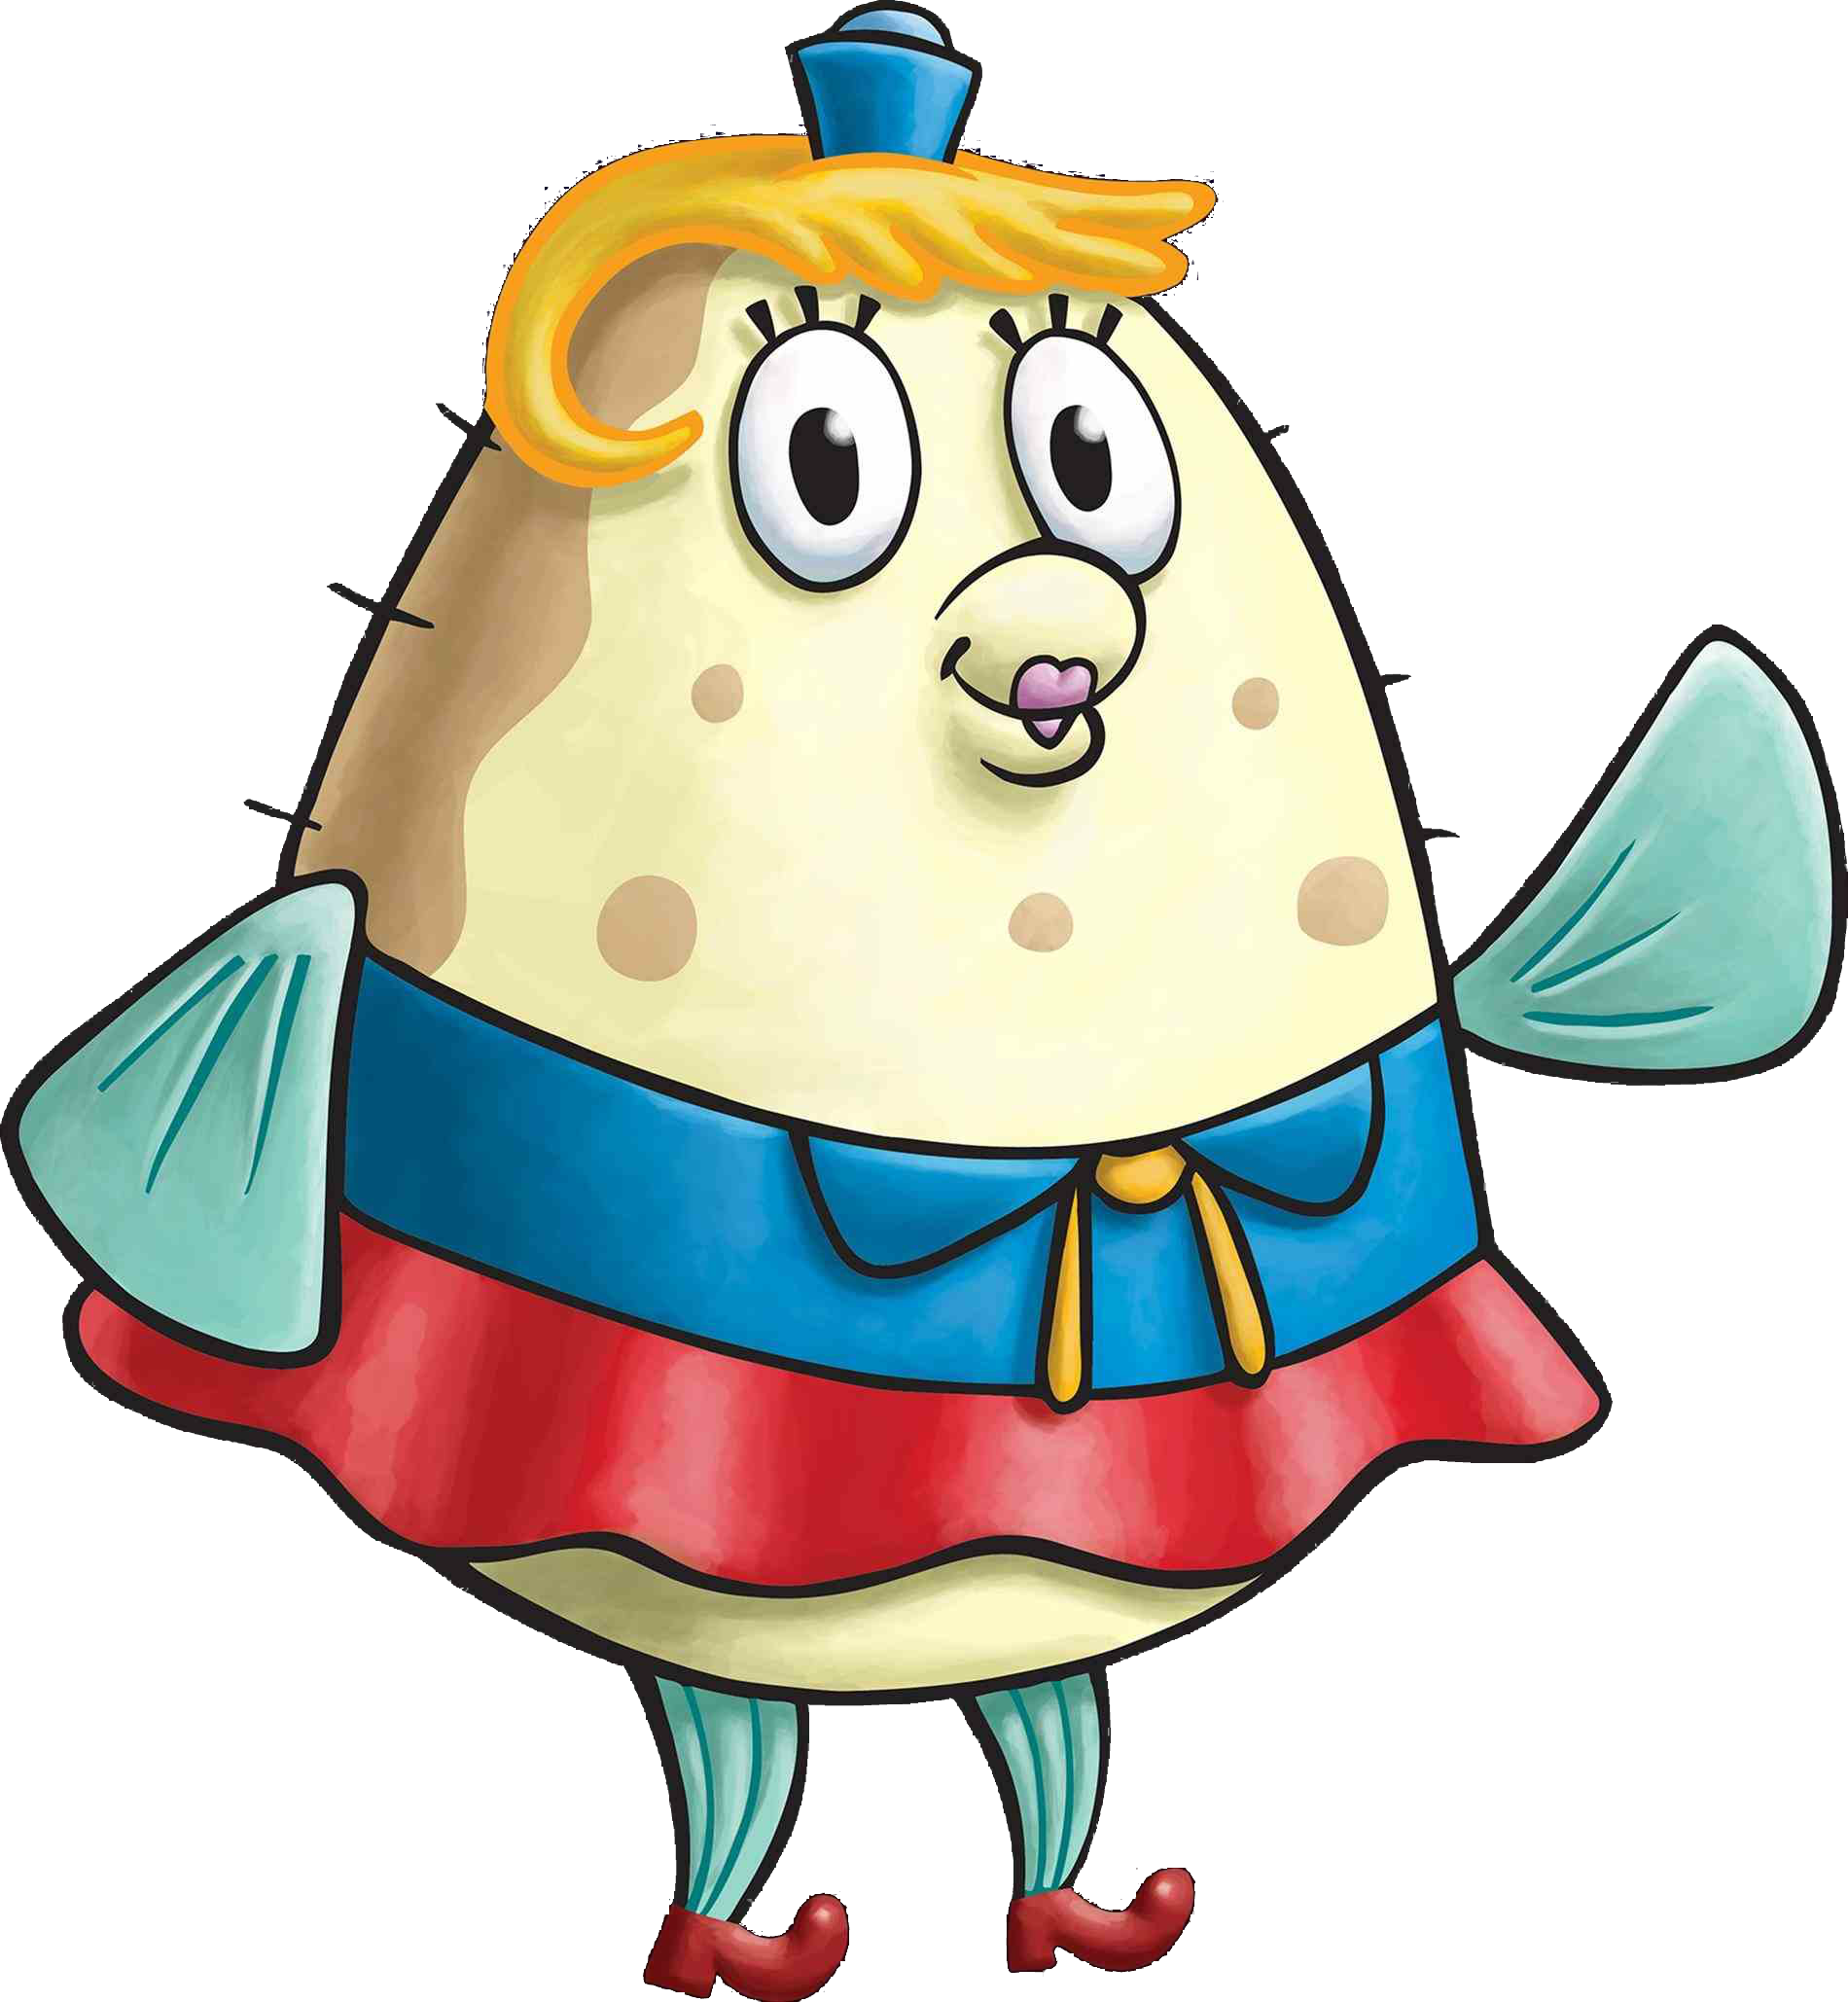 File:SpongeBob SquarePants Mrs. Puff Character Image Nickelodeon Painted Version.png